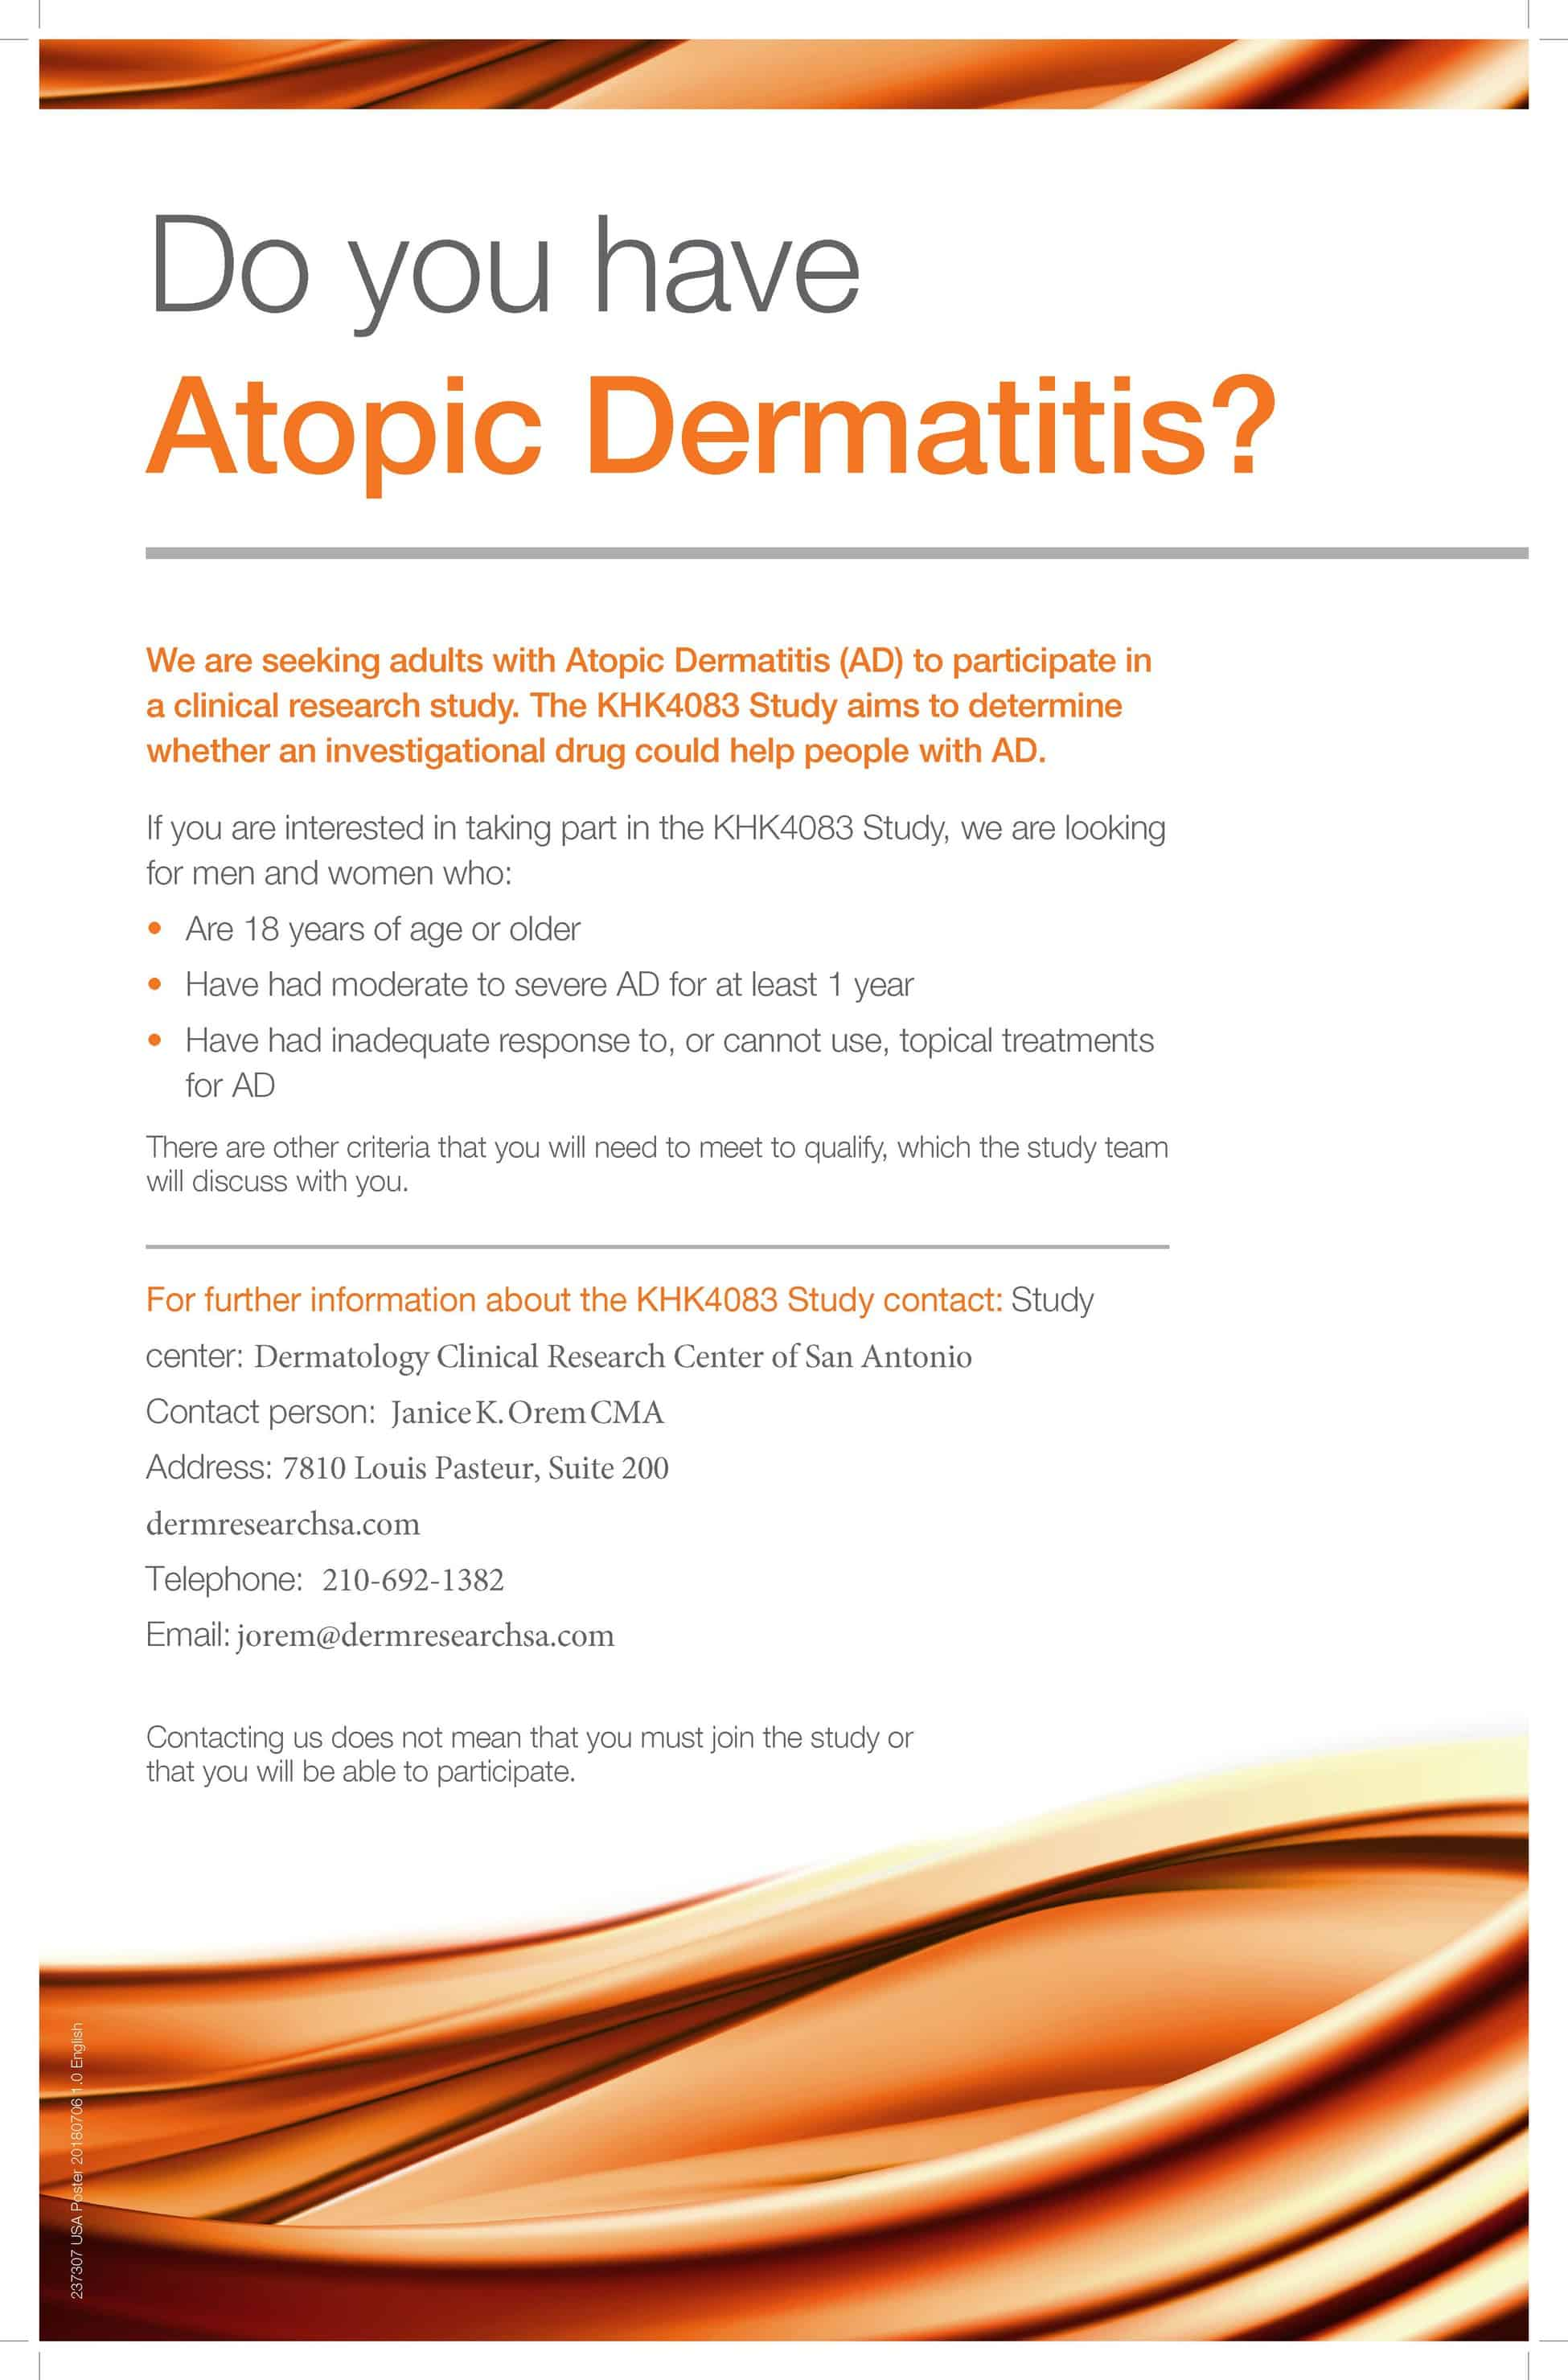 Eczema/Atopic Dermatitis Study - Up to $2200 Compensation